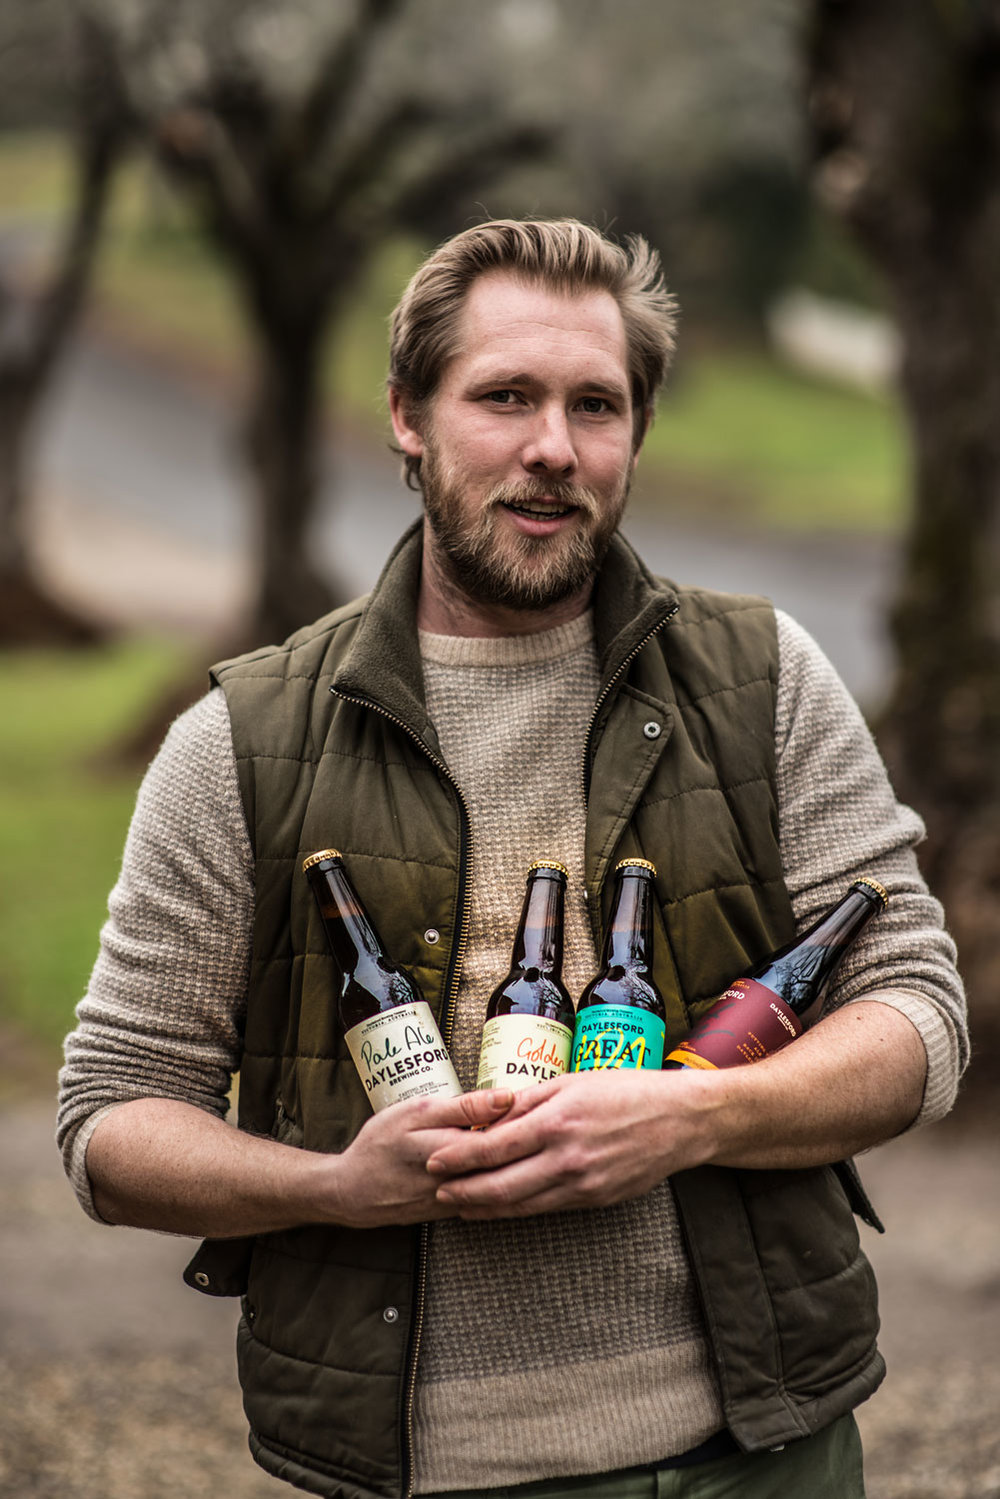 DAVID GILL, BREWER AND CO-FOUNDER DAYLESFORD BREWING CO.